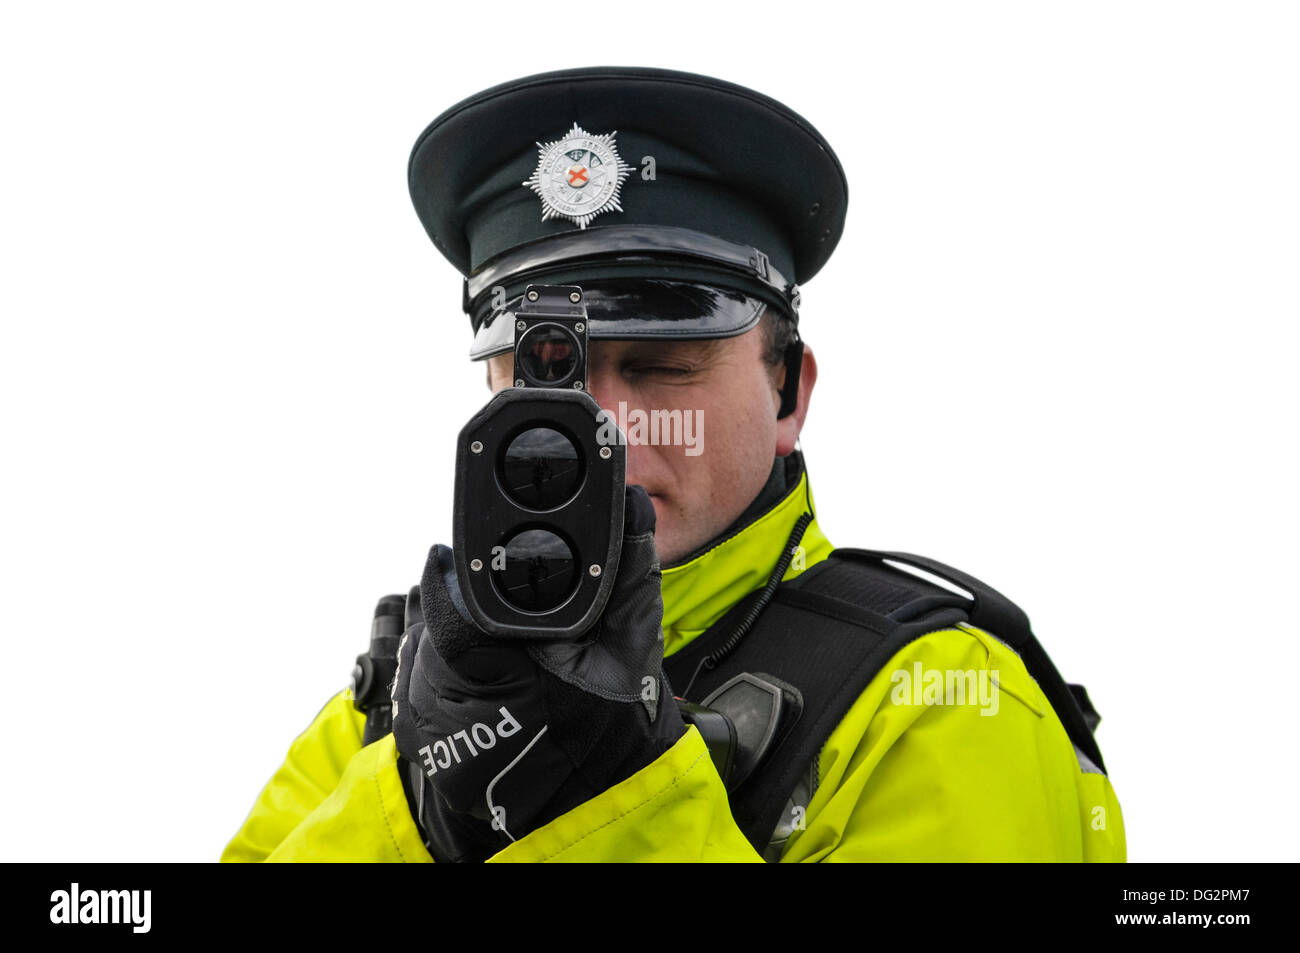 Police officer uses a Laser Technology Inc UltraLyte laser speed detector gun (front on, cutout) - Stock Image